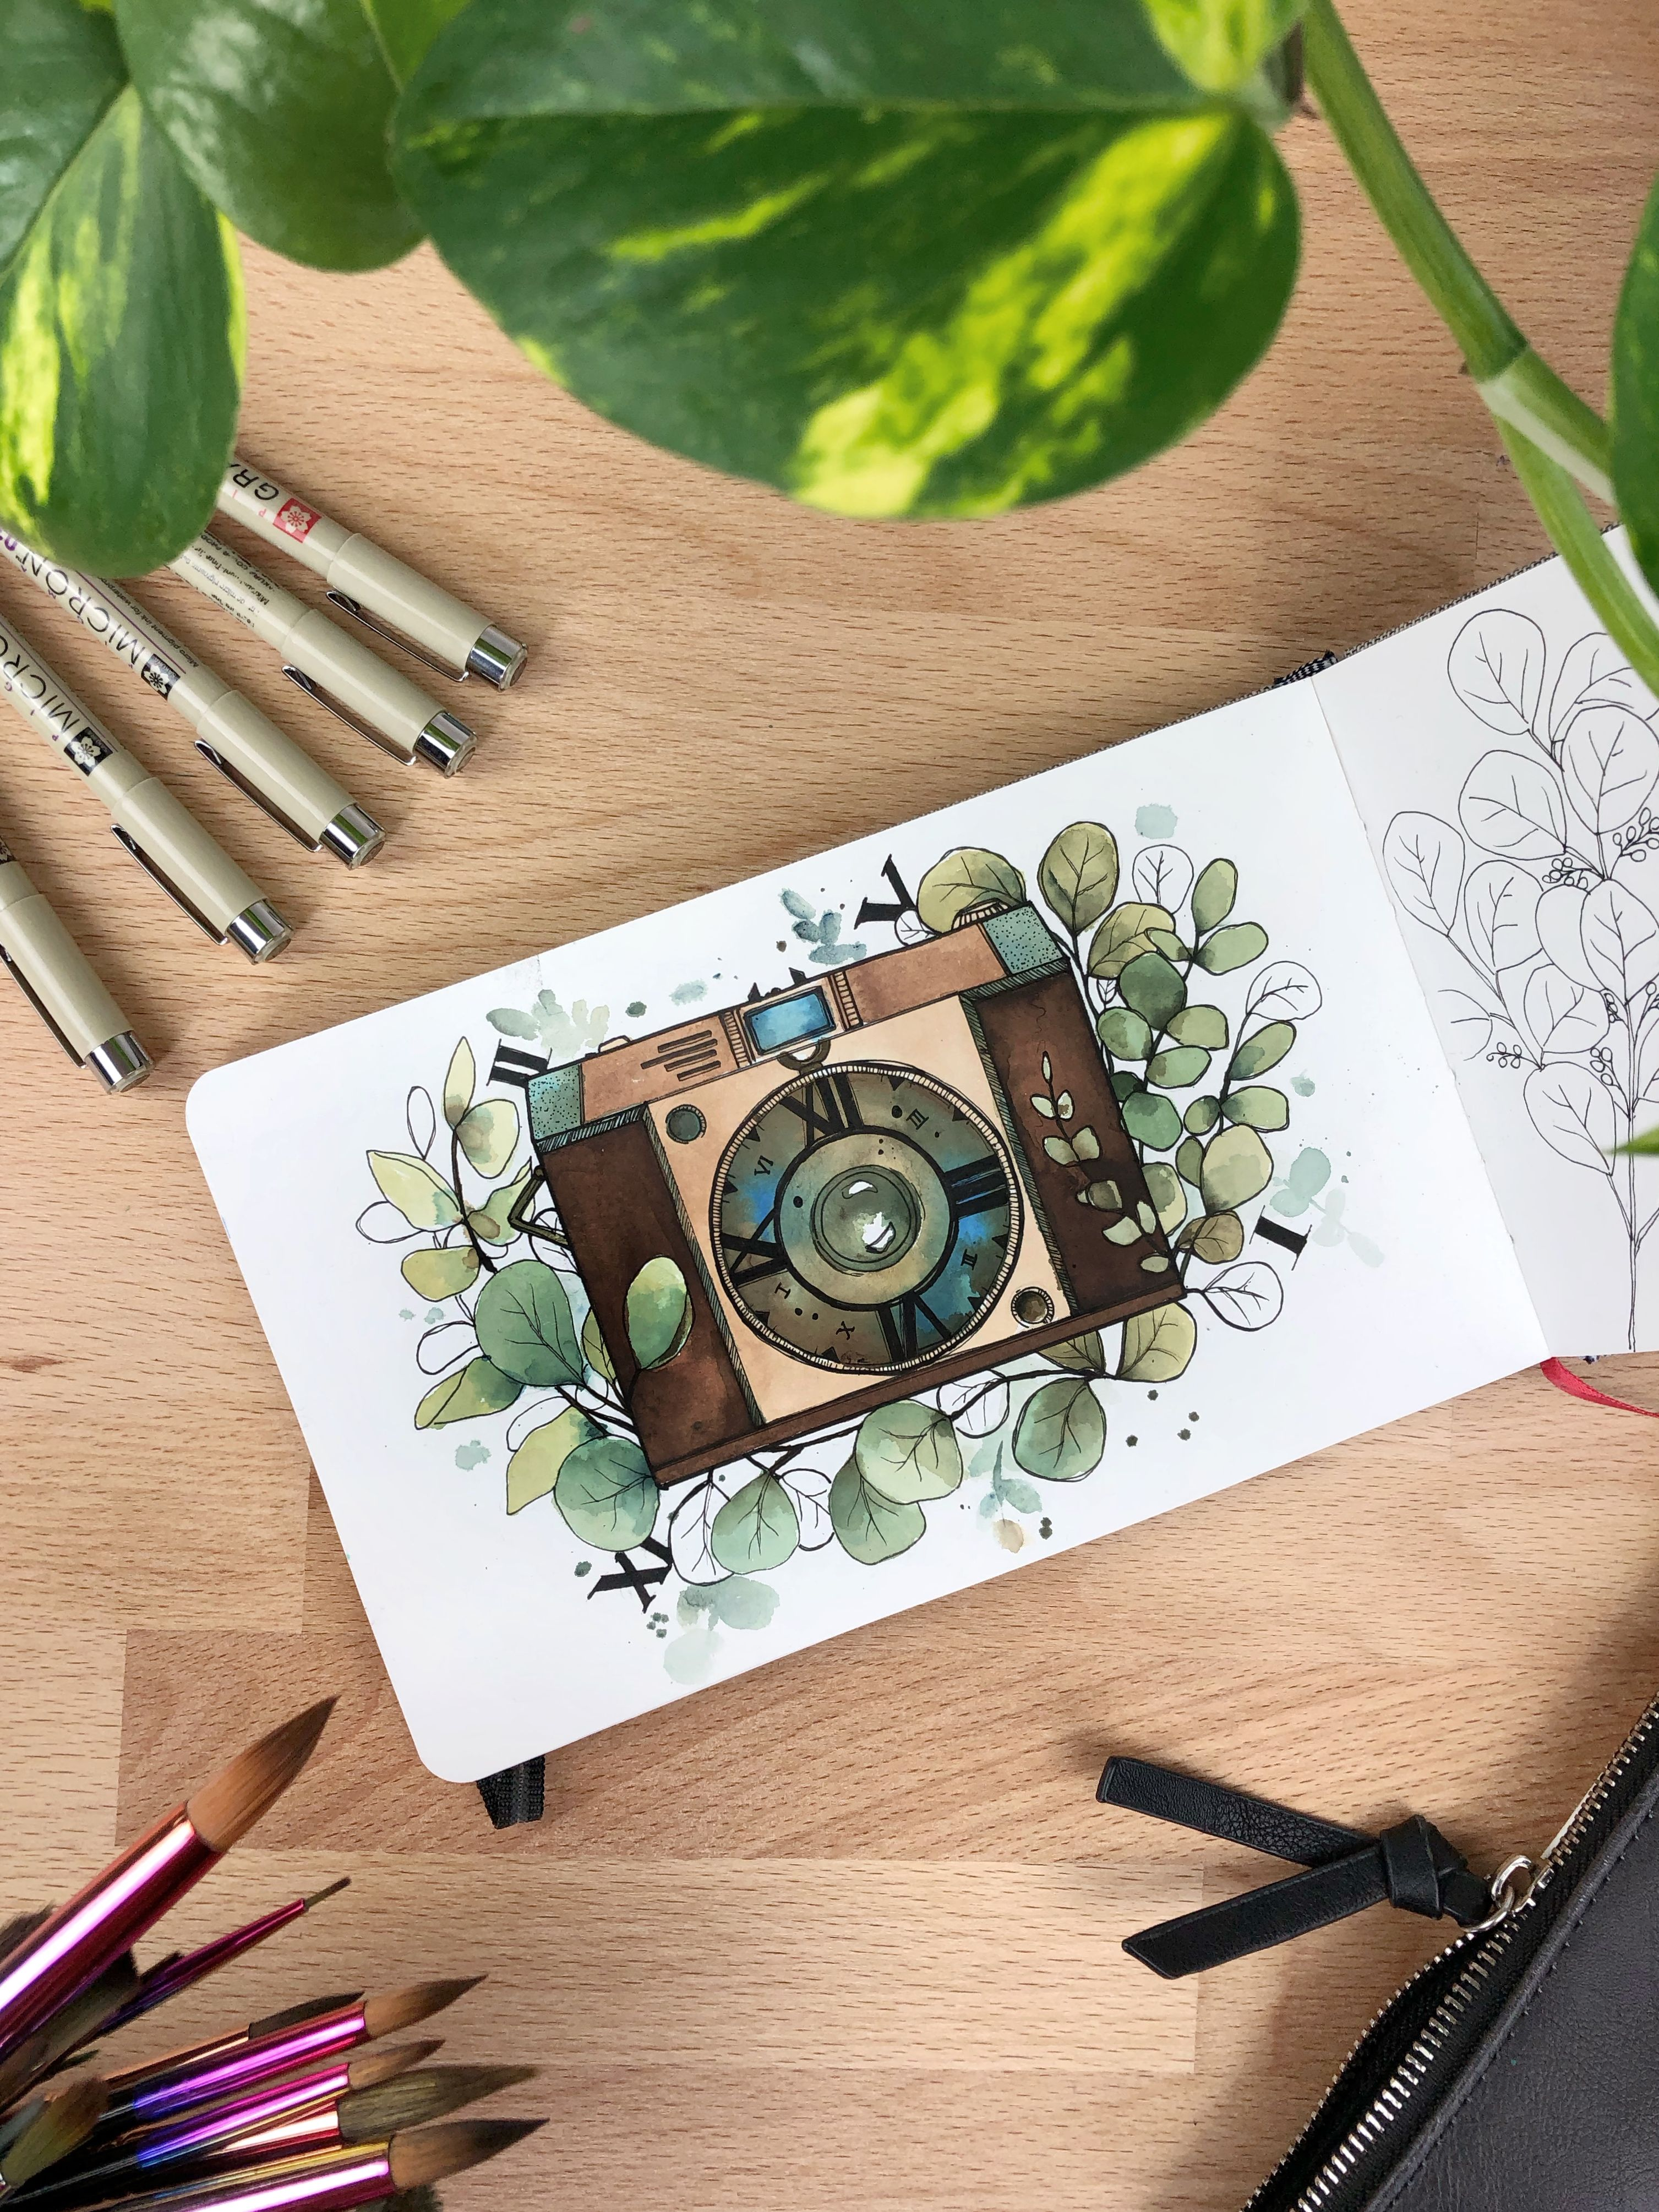 Camera And Time Illustration With Watercolors And Micron Pens